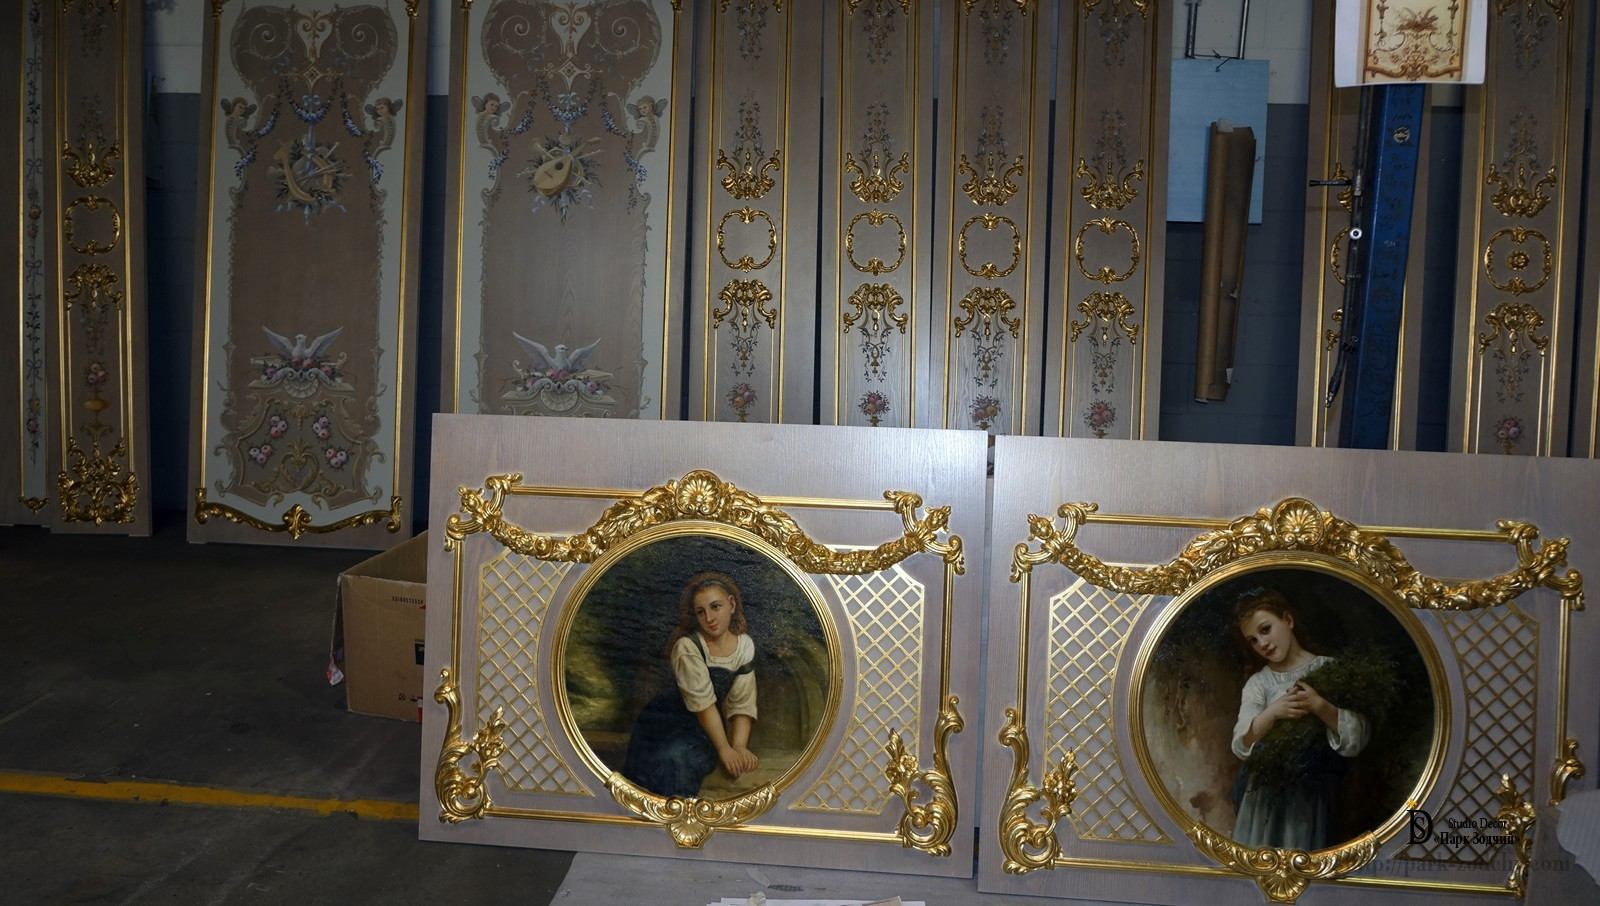 Boiserie elements with picturesque inserts and gilding